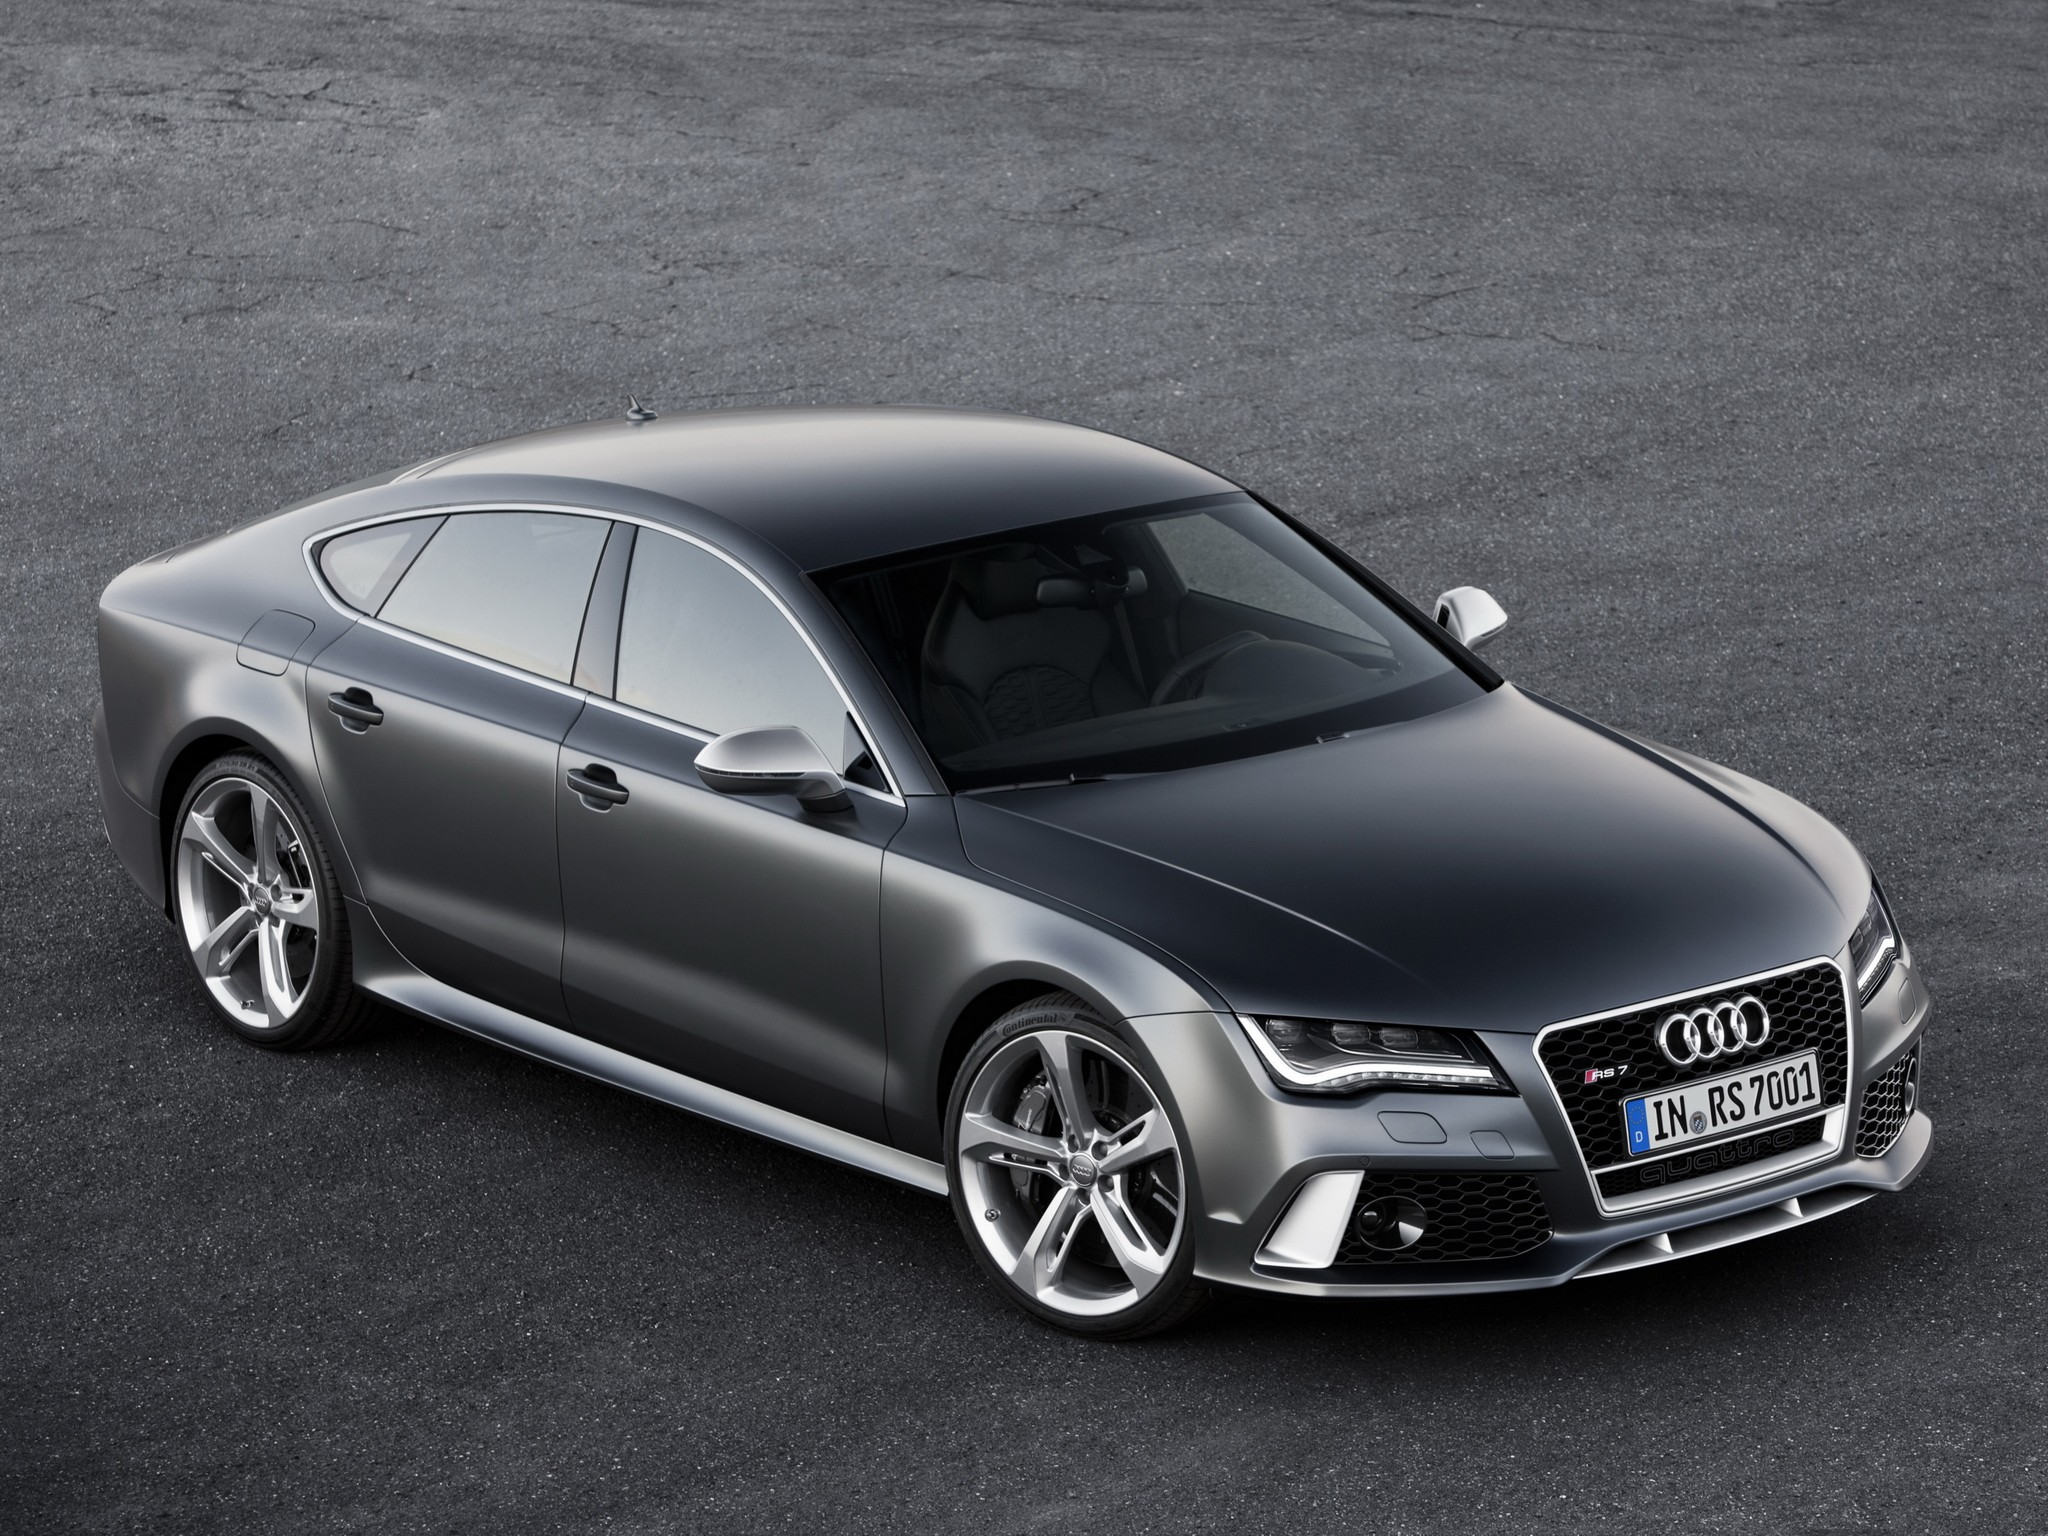 audi rs7 sportback specs photos 2013 2014 2015 2016 2017 2018 autoevolution. Black Bedroom Furniture Sets. Home Design Ideas